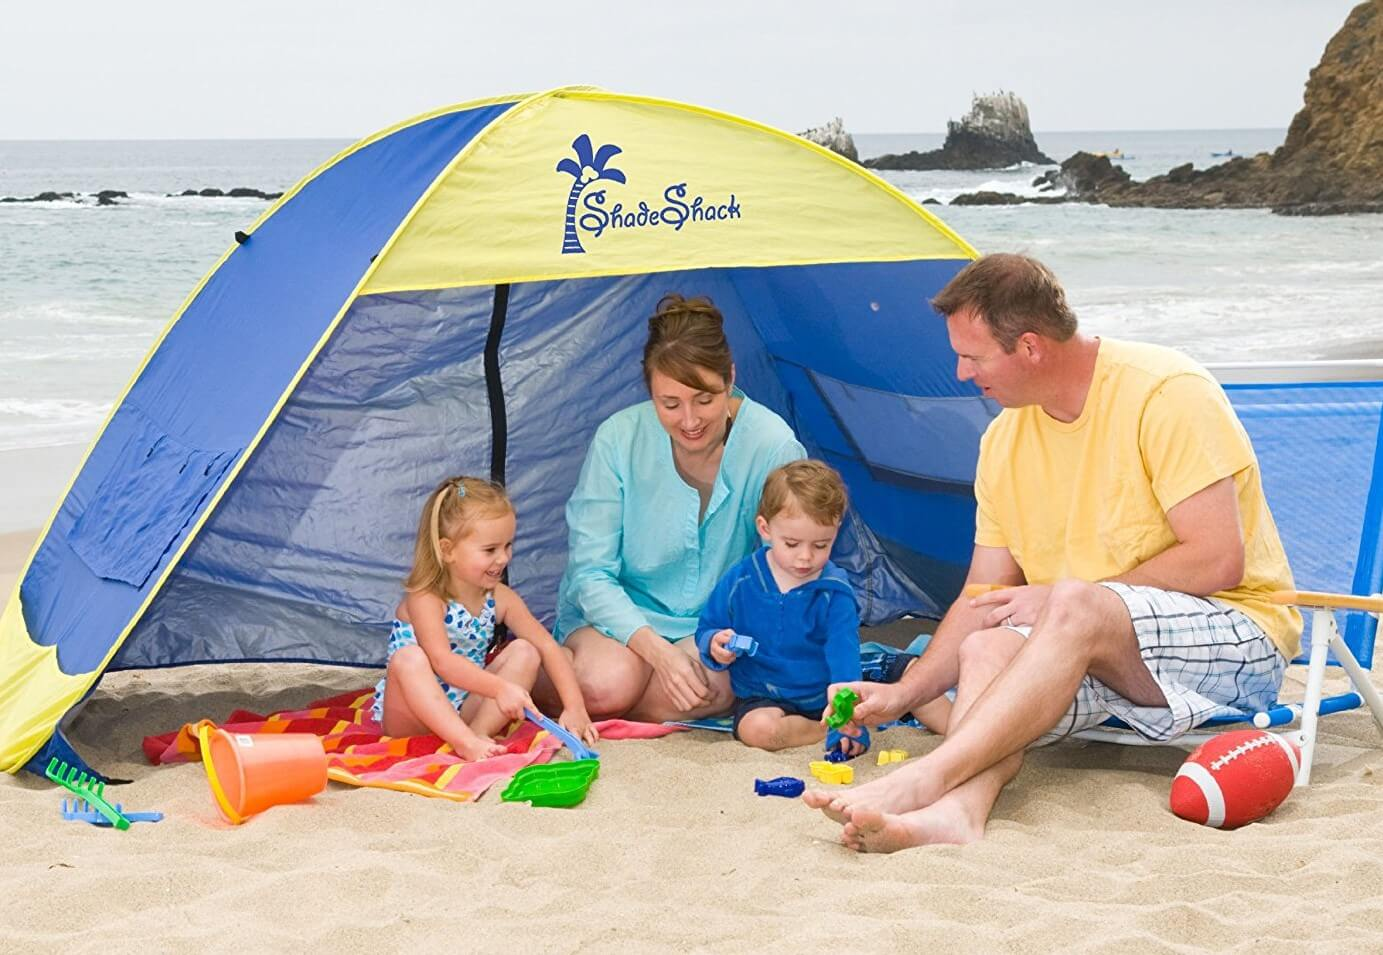 Shade Shack Instant Pop Up Family Beach Tent and Sun Shelter & Shade Shack Instant Pop Up Family Beach Tent and Sun Shelter ...